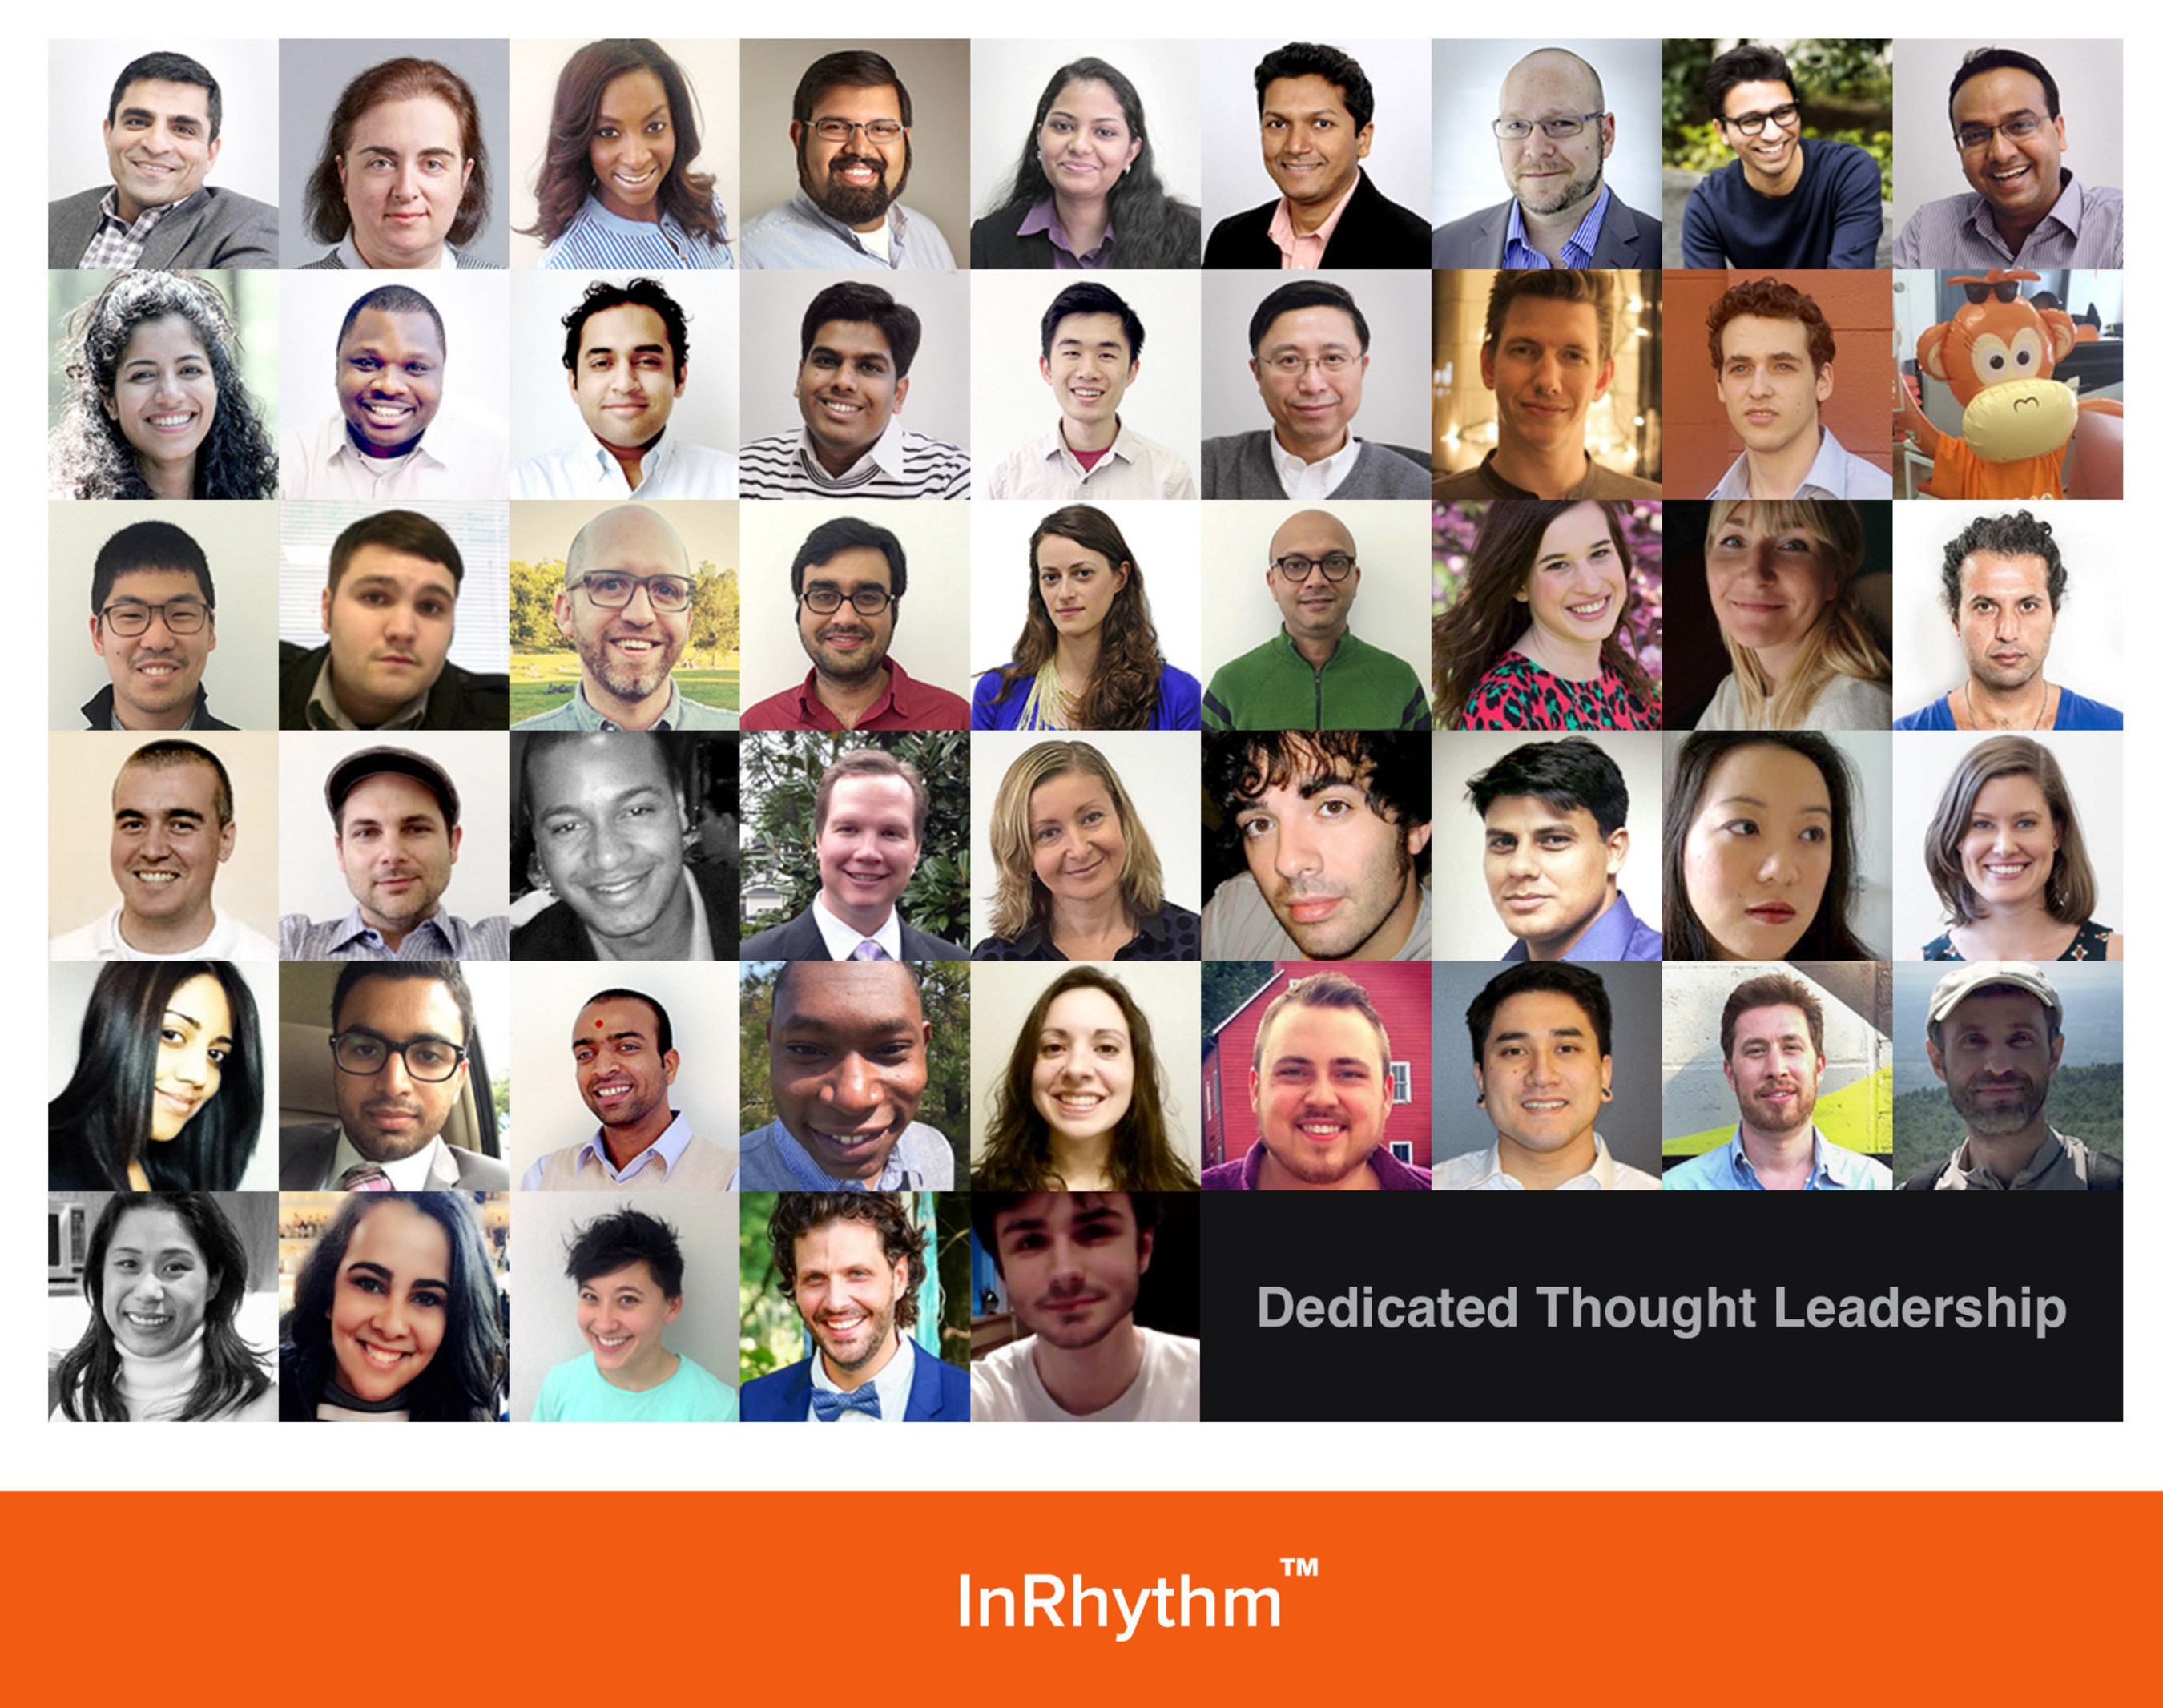 InRhythm Ranked Number 427 Fastest Growing Company in North America on Deloitte's 2015 Technology Fast 500